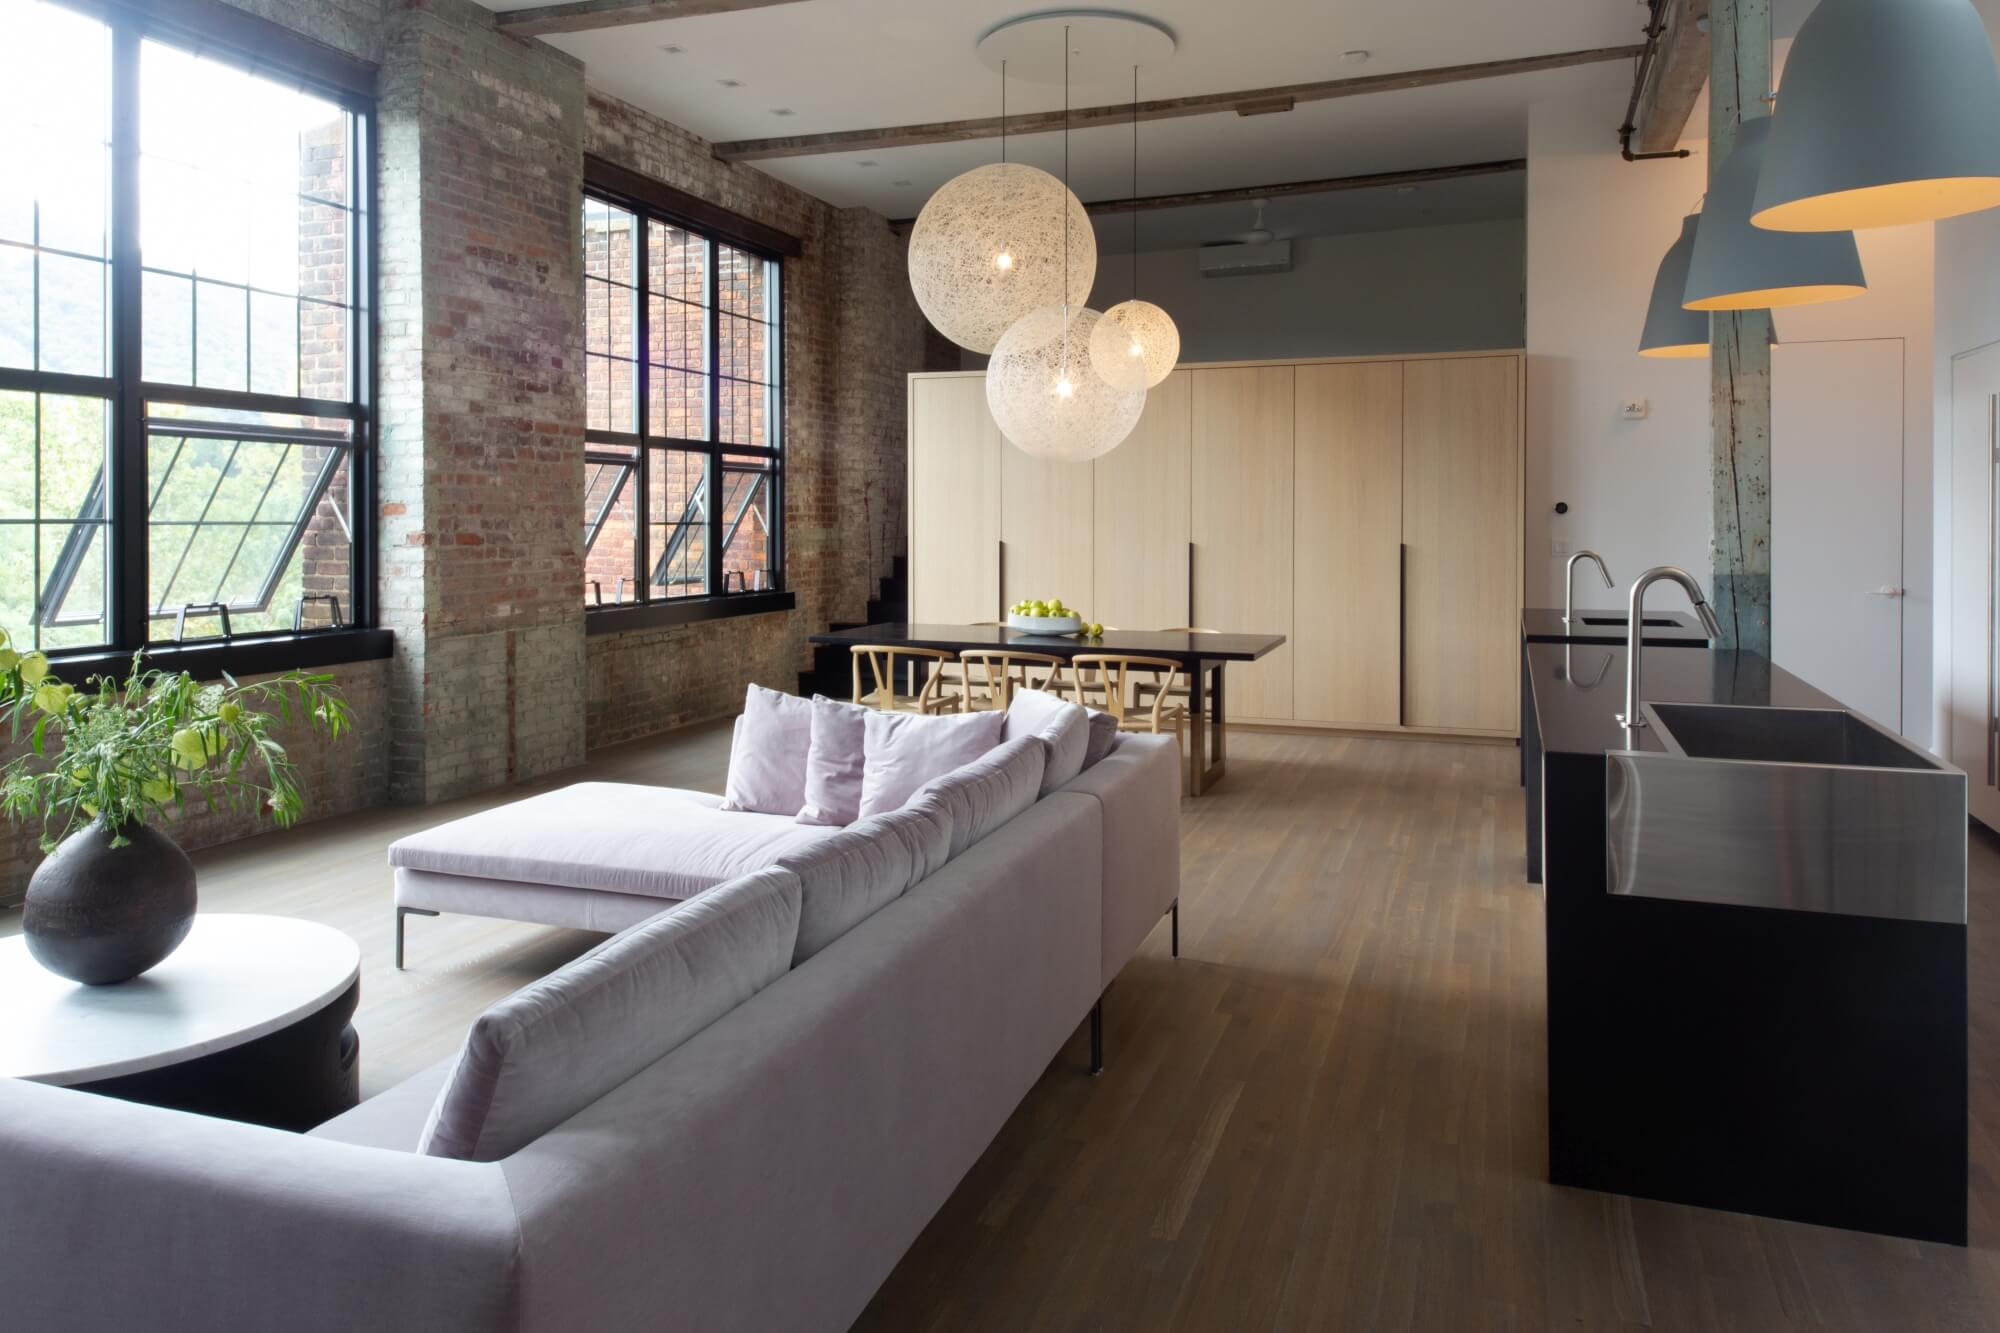 New York loft with hardwood flooring and brick walls.